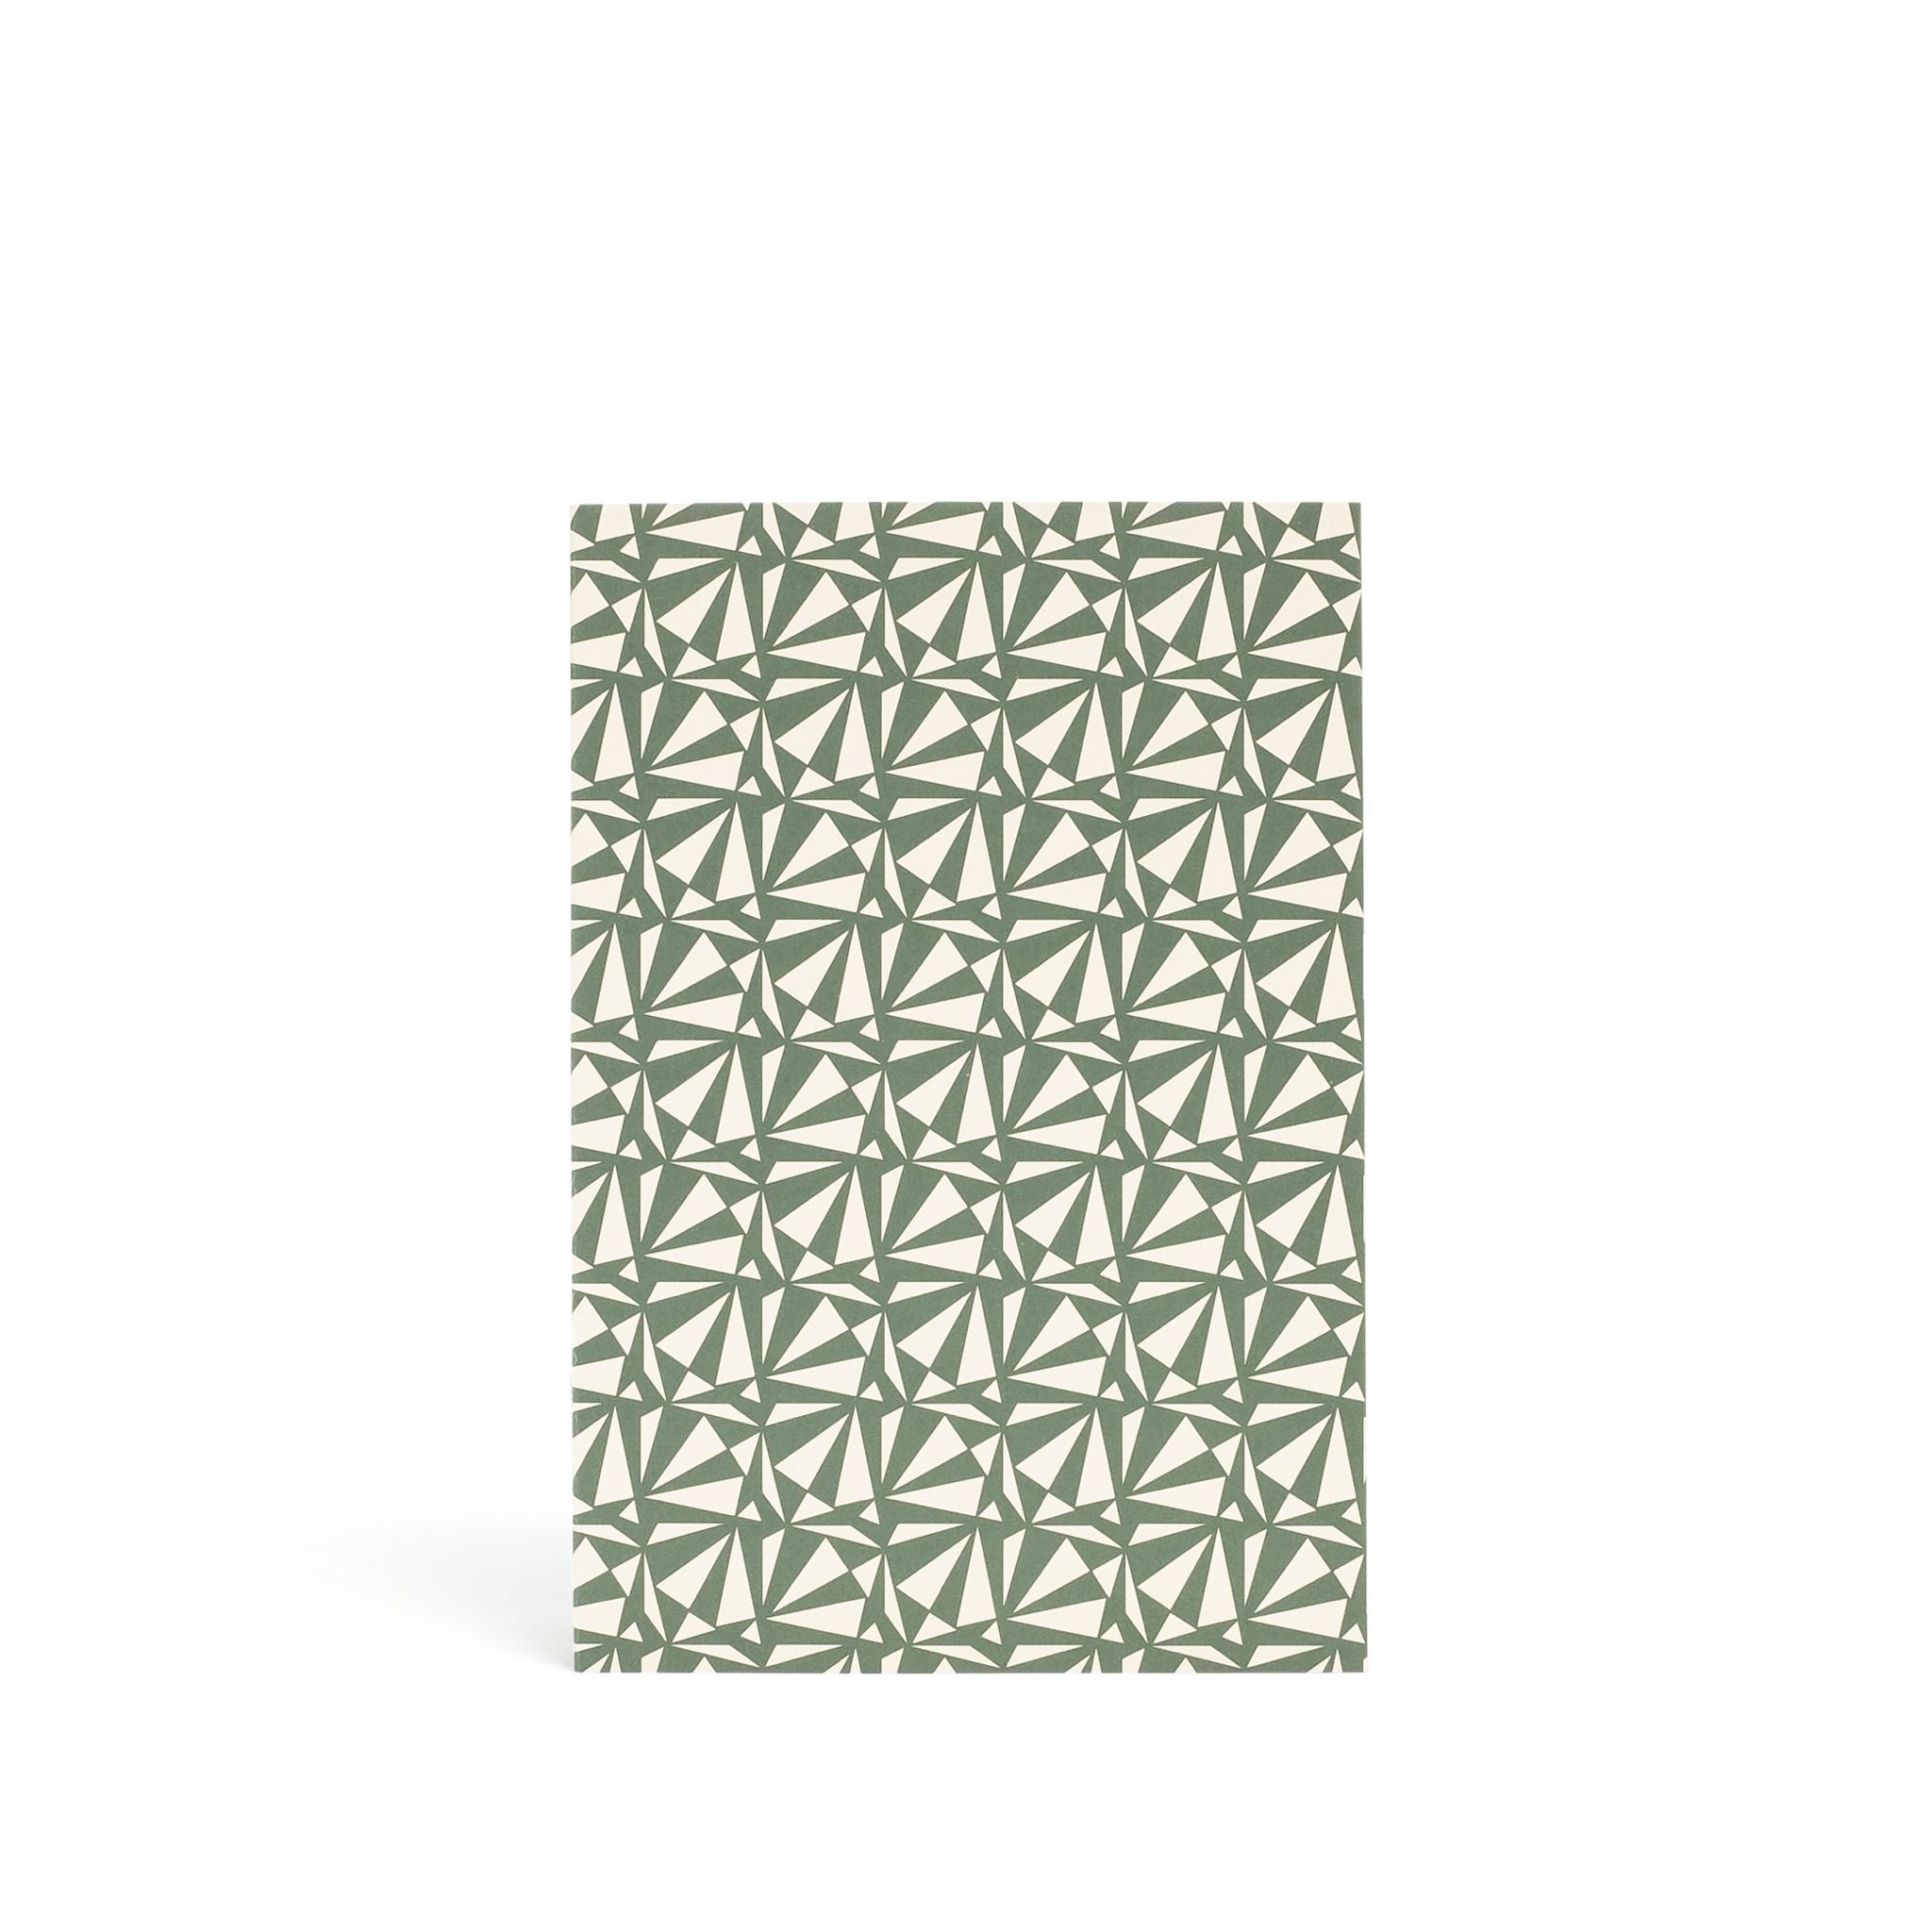 Otto Layflat Notebook by Esme Winter